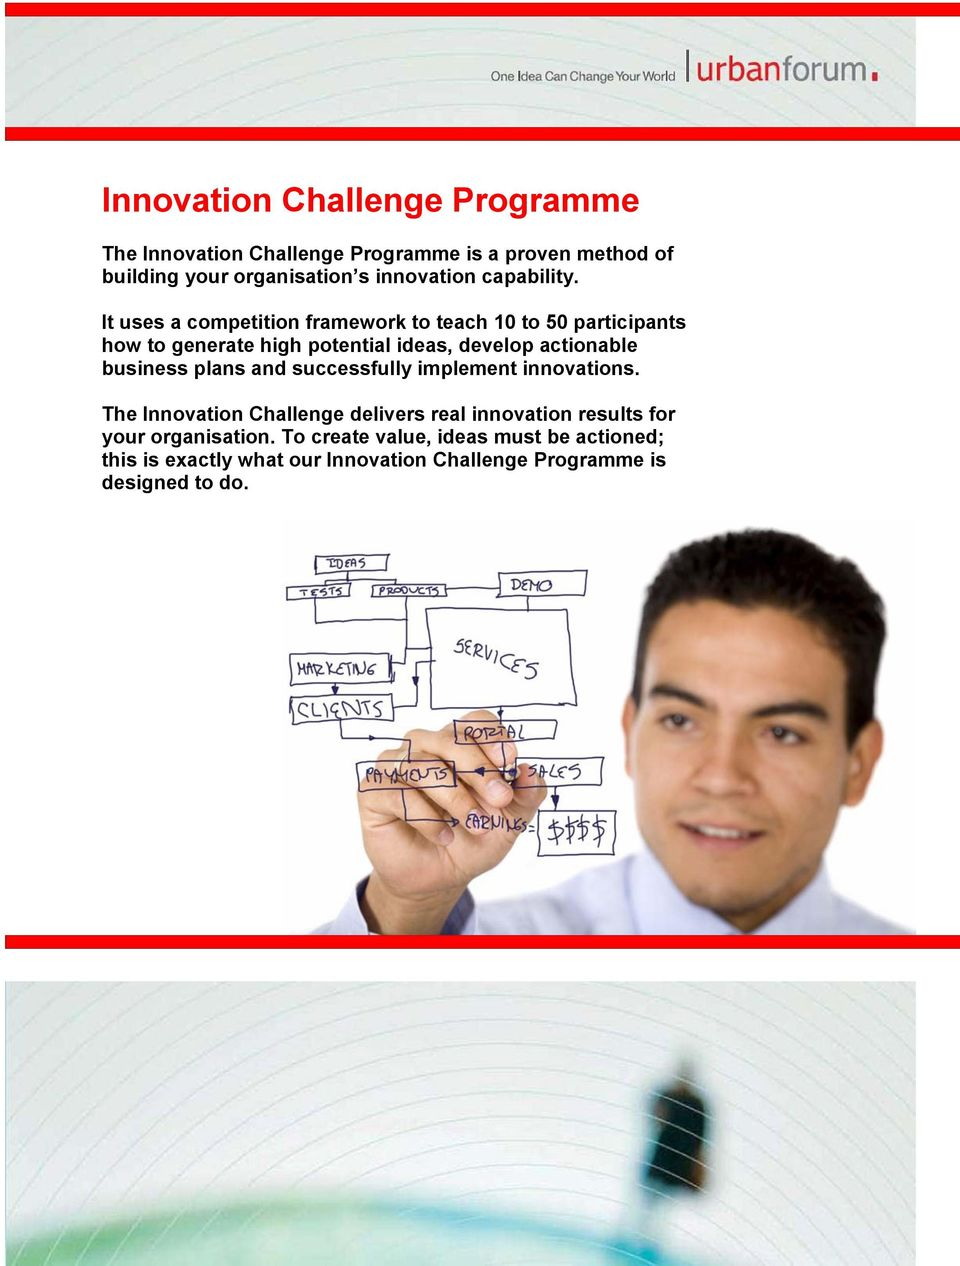 It uses a competition framework to teach 10 to 50 participants how to generate high potential ideas, develop actionable